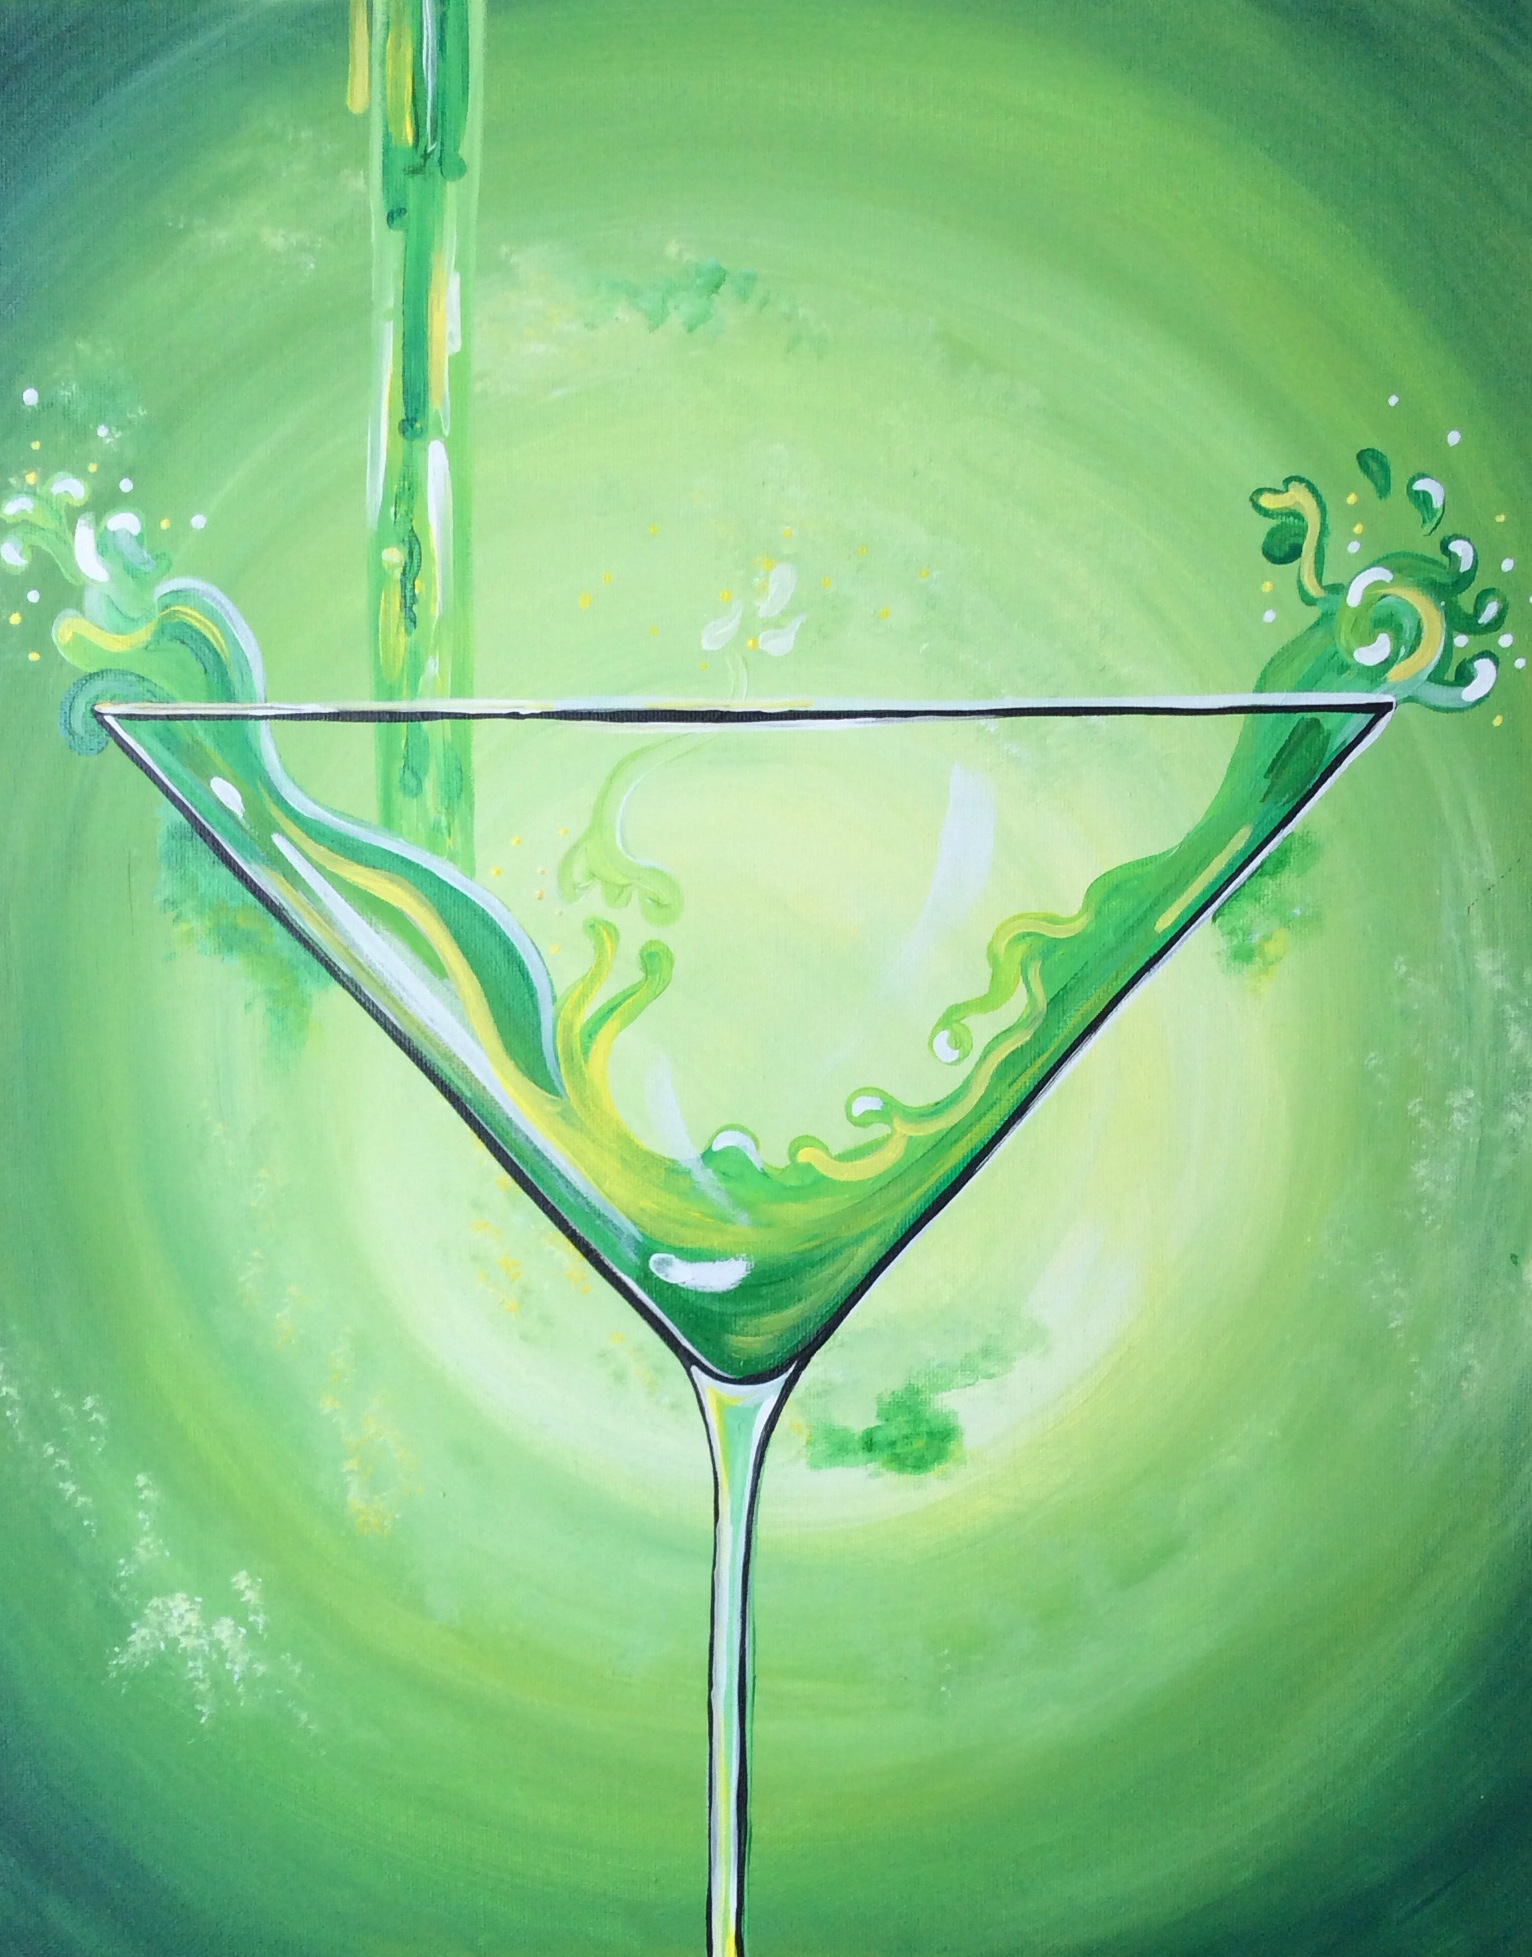 Green Martini - 2 Hours